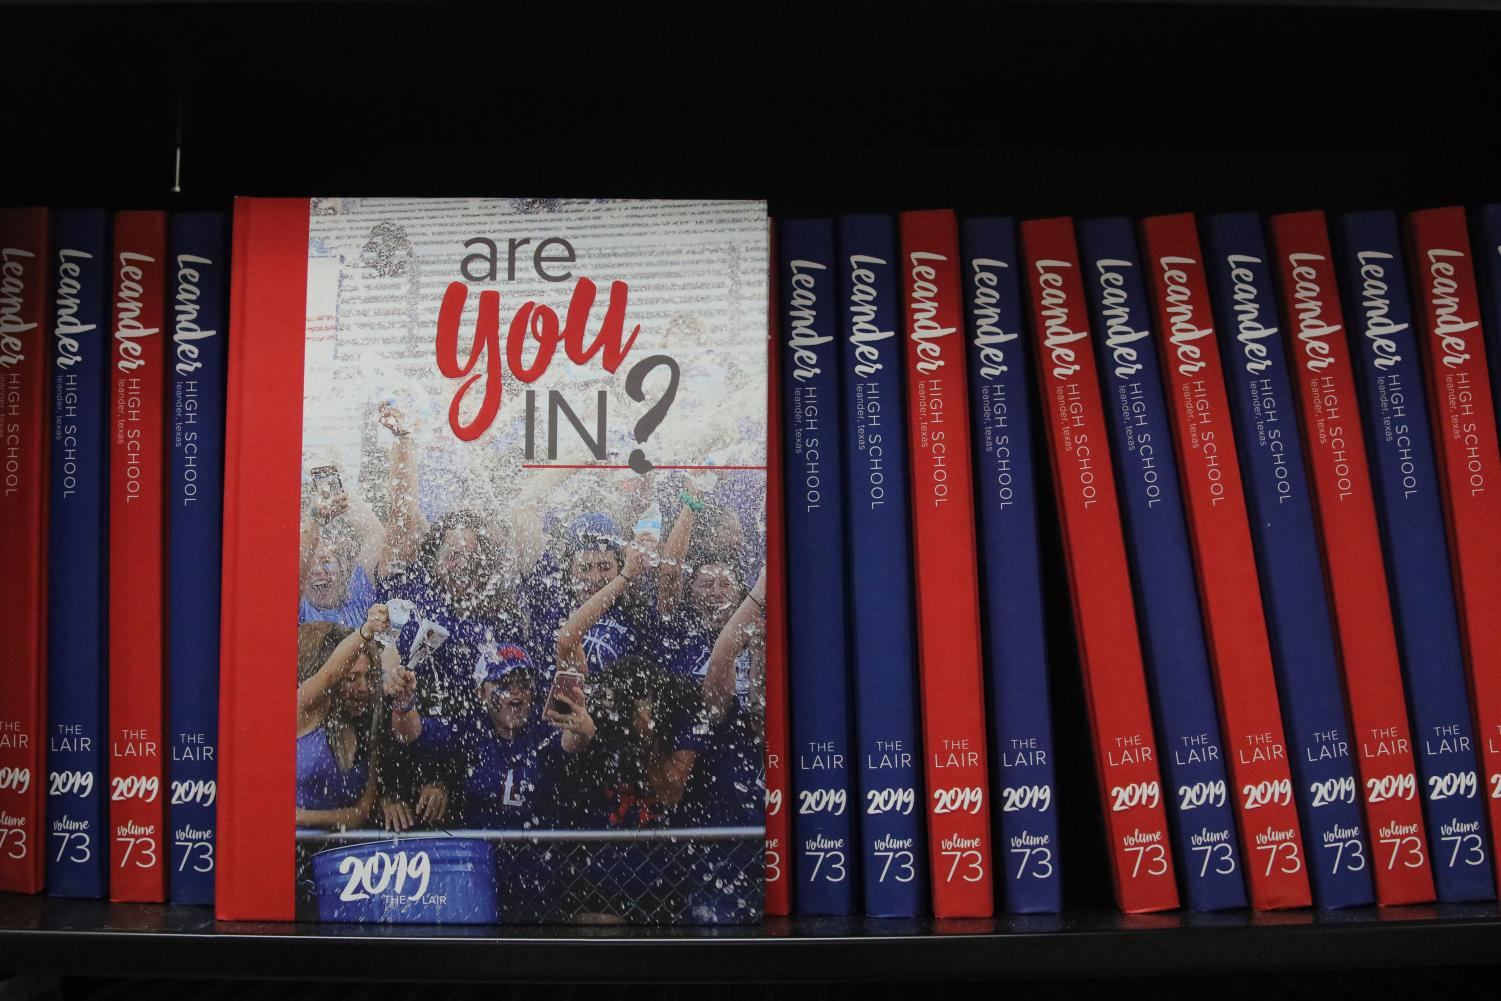 Yearbook was selected as a Crown Award Finalist from 2018-19 year.